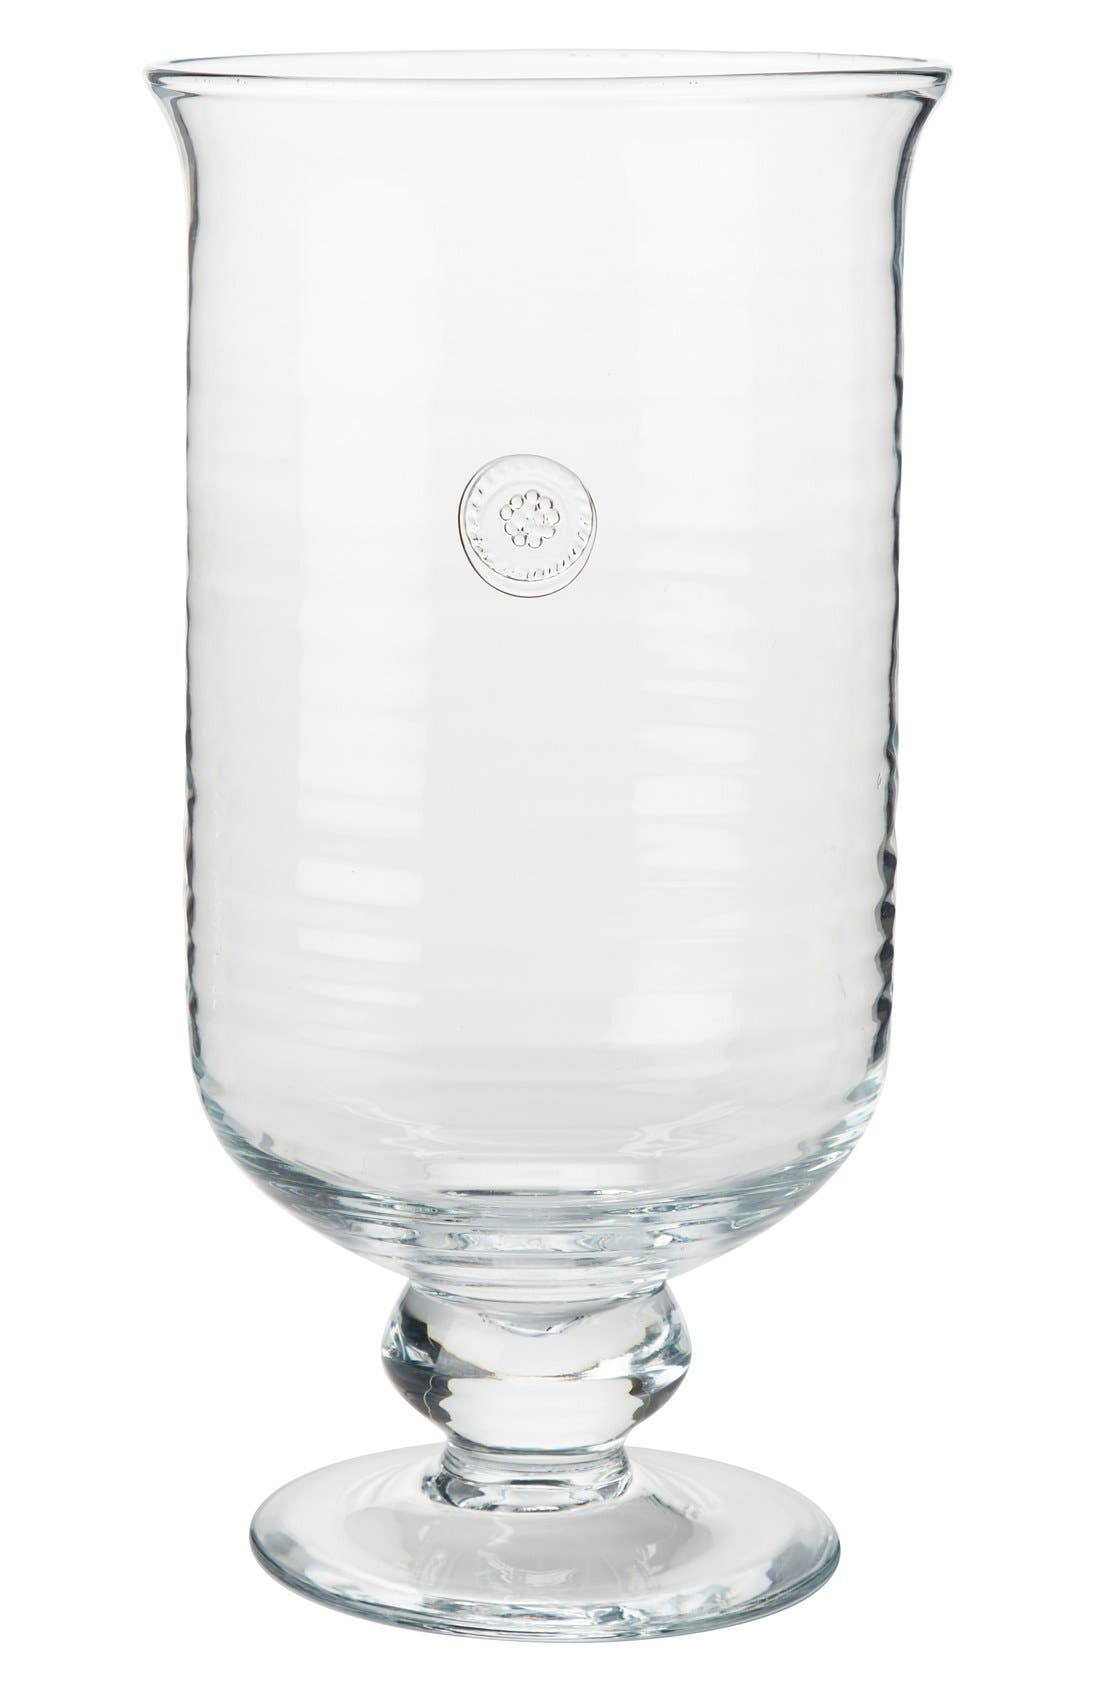 Berry & Thread Large Hurricane Glass Candleholder,                         Main,                         color, CLEAR